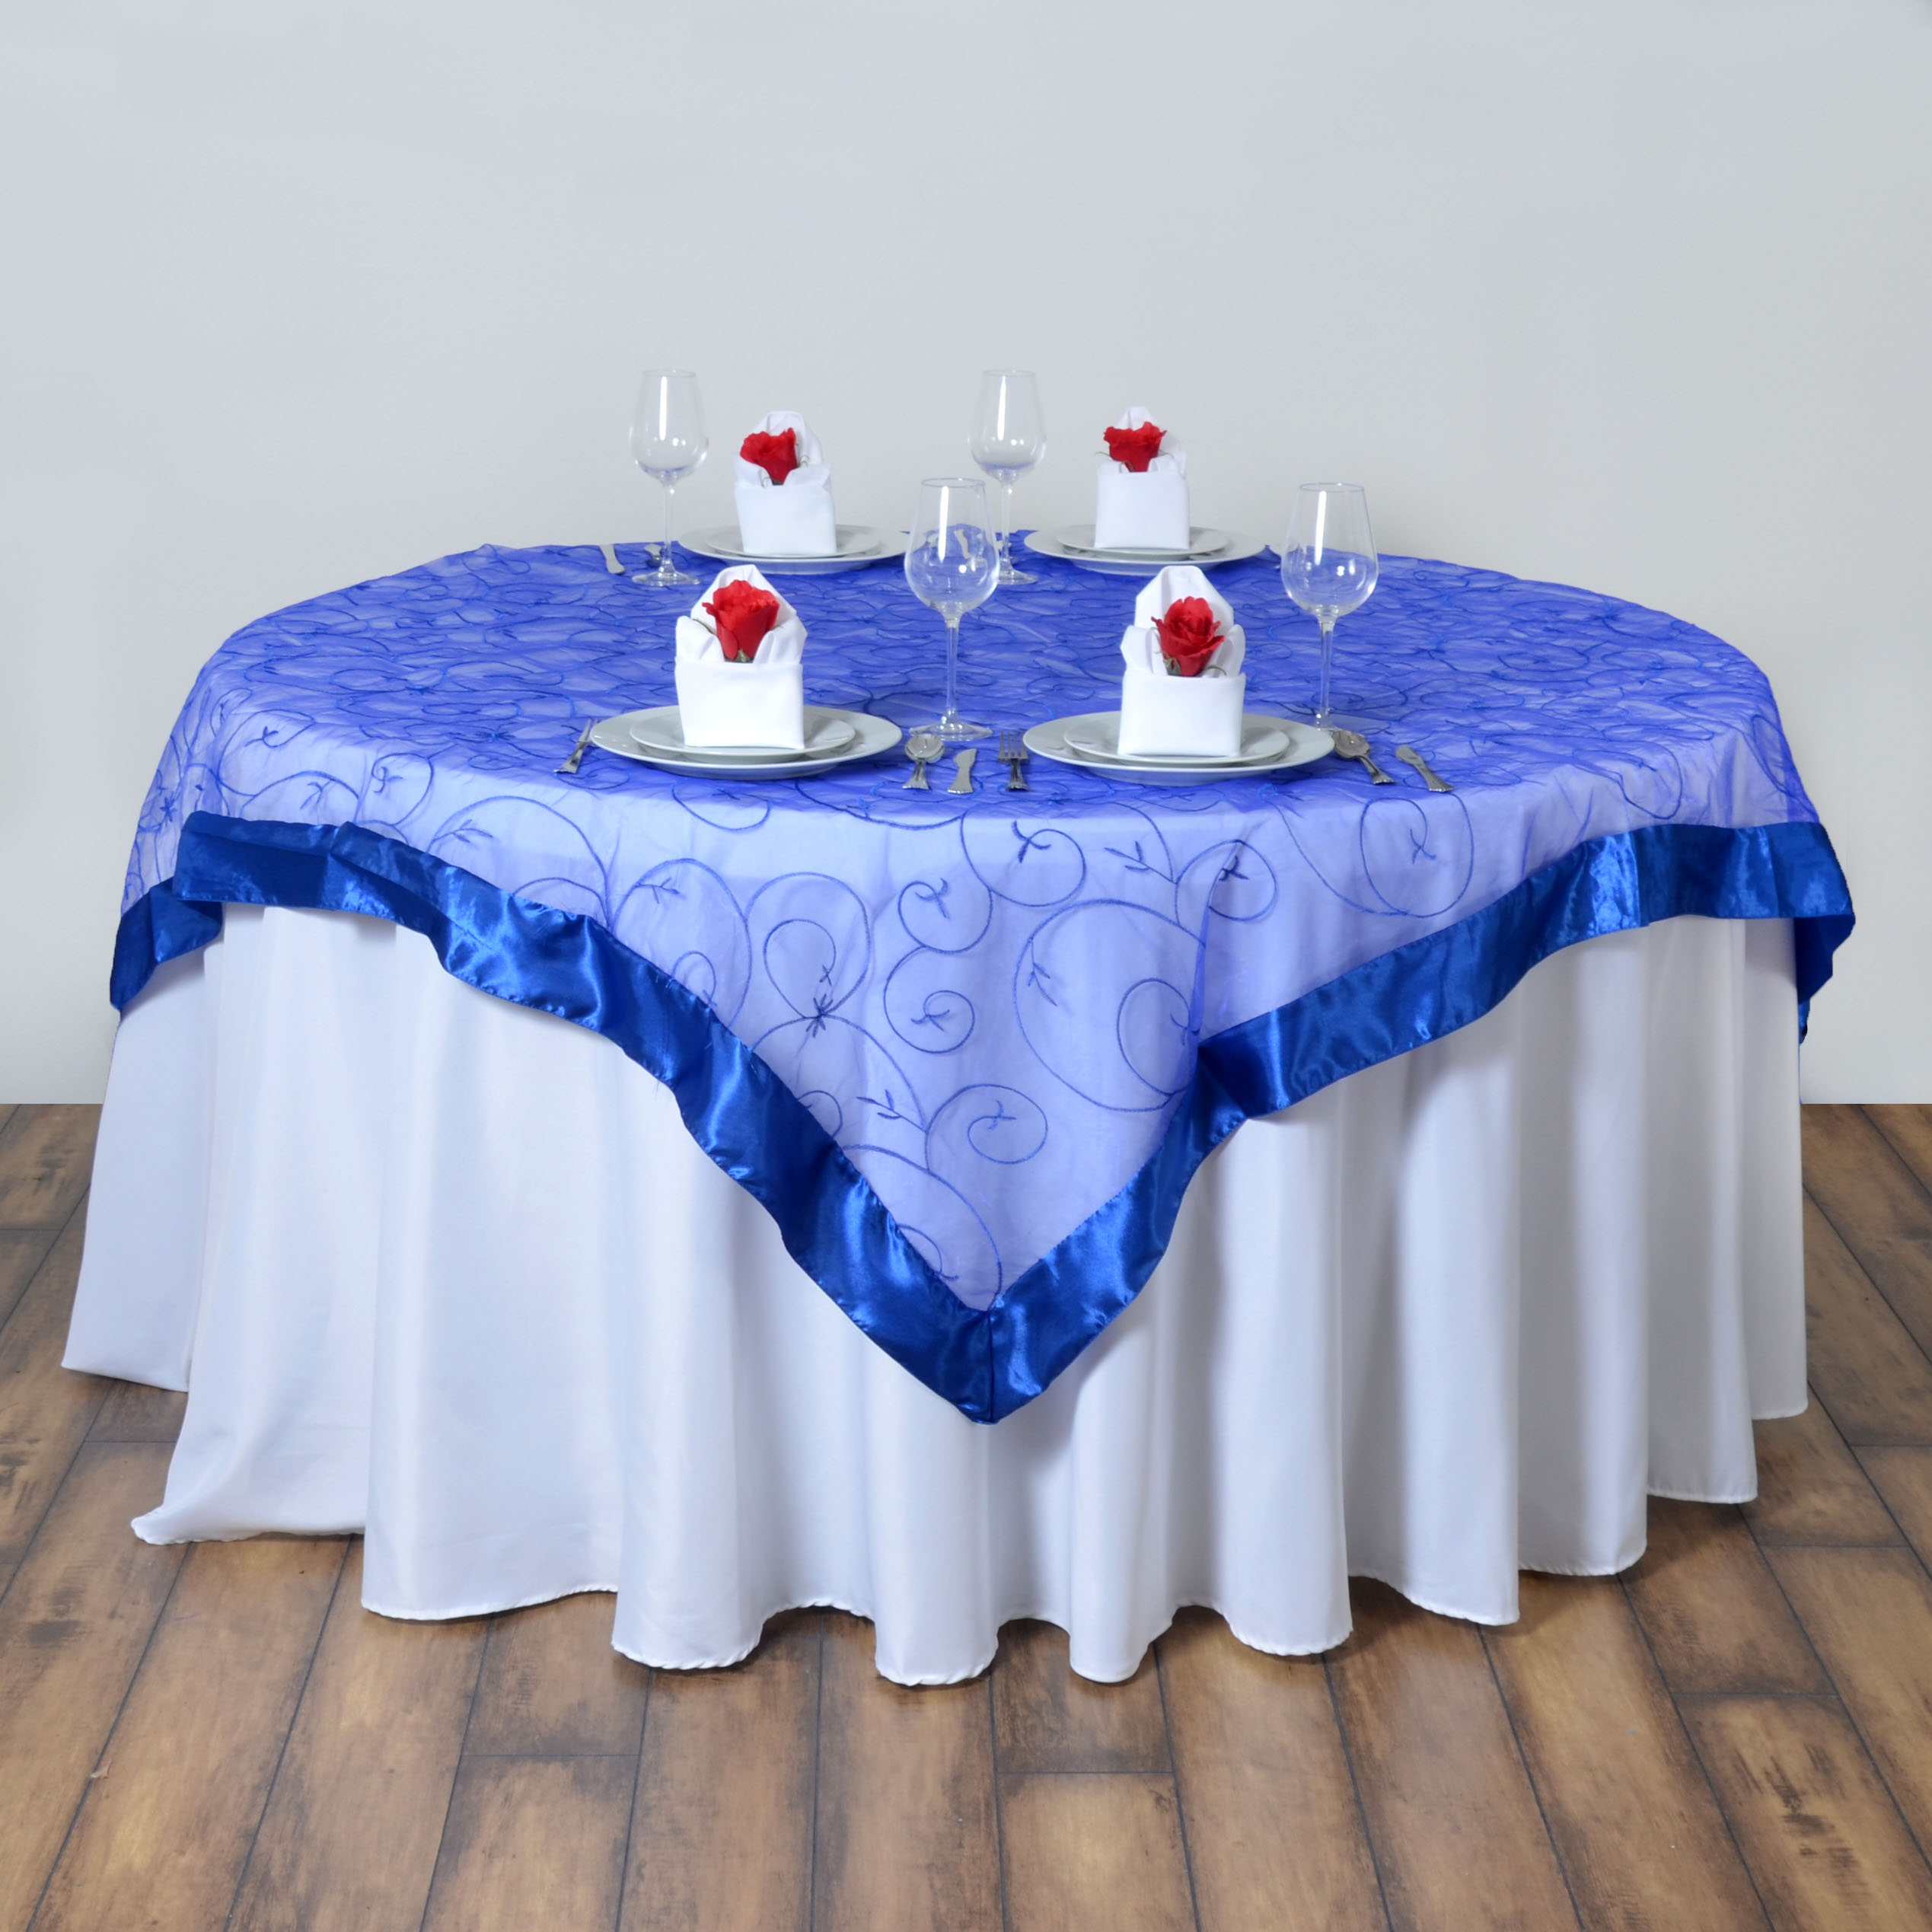 10 Pcs 60x60 Embroidered Sheer Organza Table Overlays Wedding Party